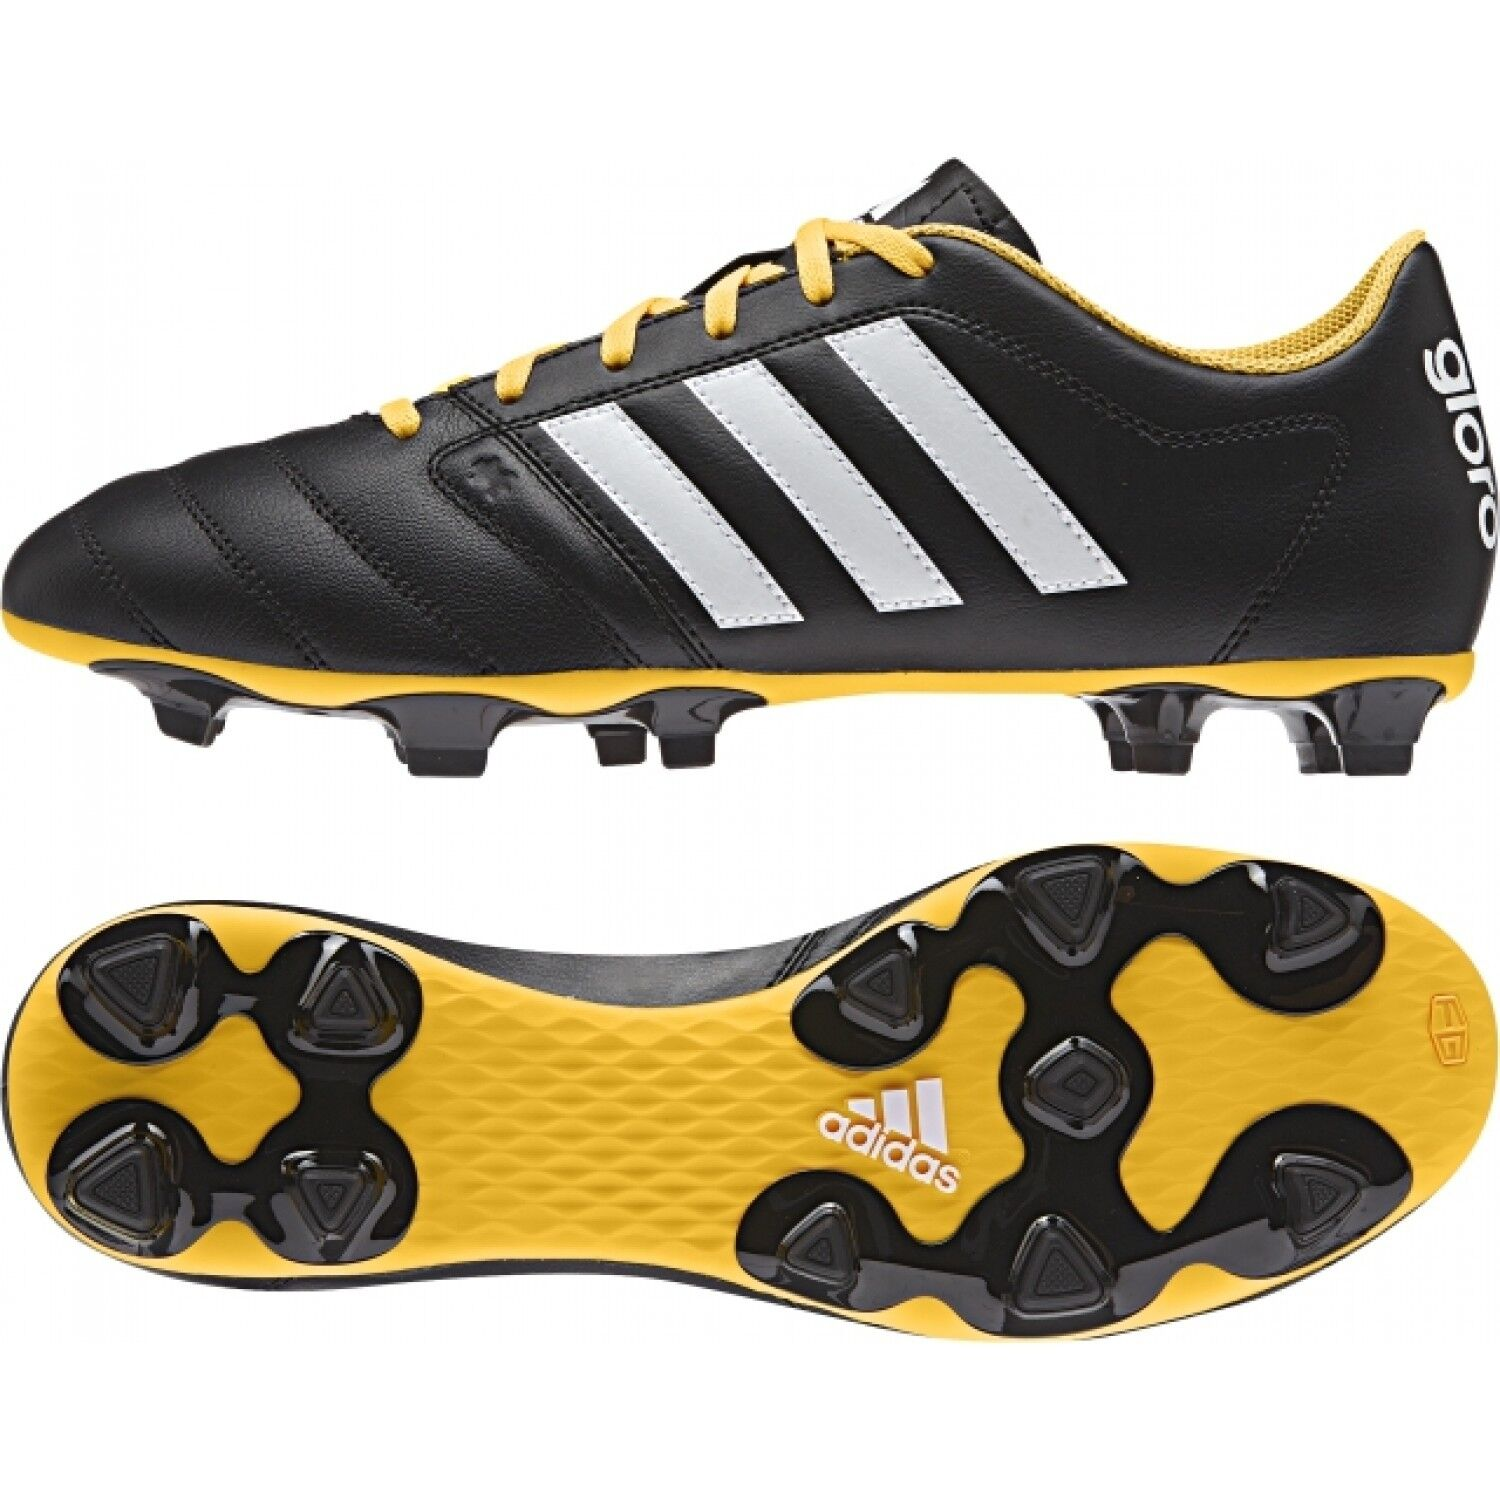 Adidas GLgold 16.2 FIRM GROUND BOOTS (AF4863)